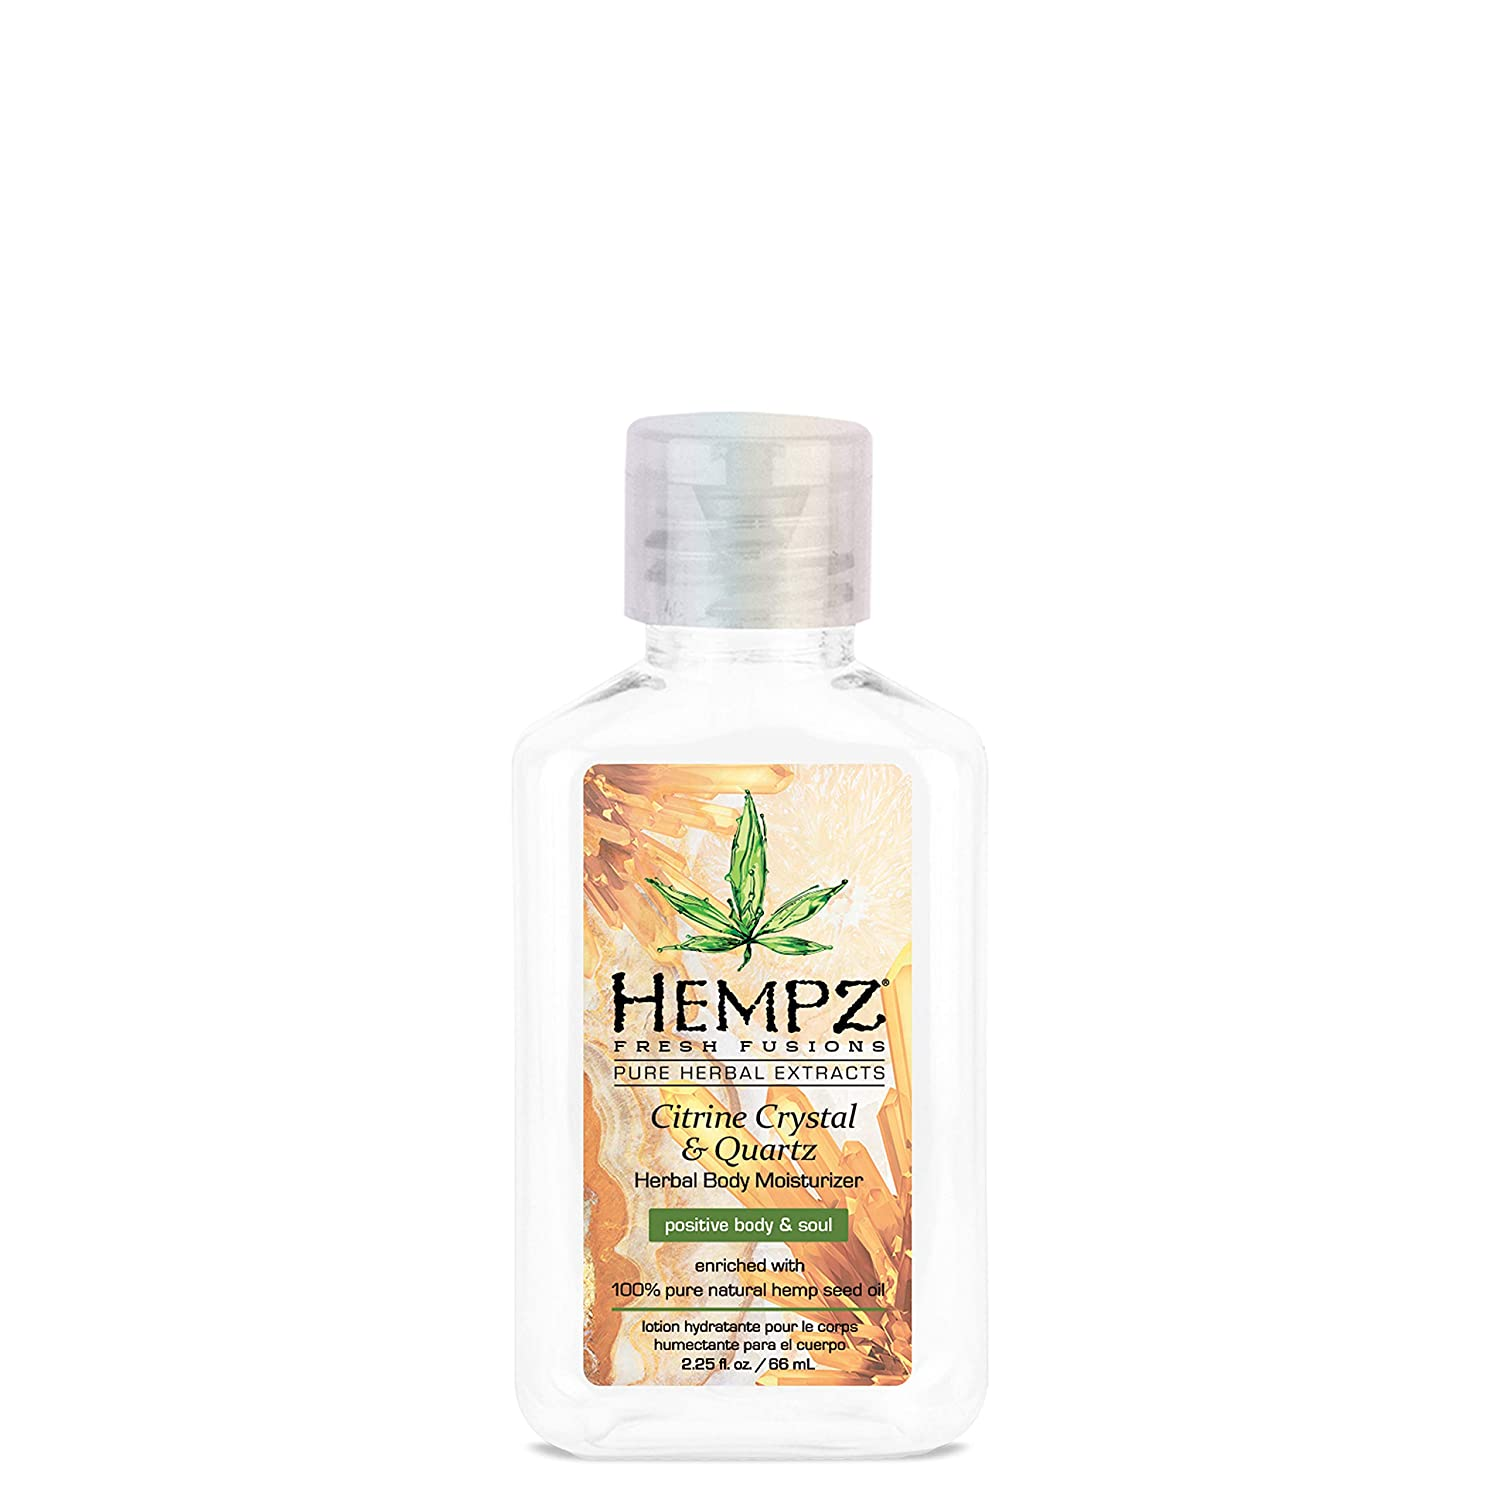 HEMPZ Herbal Body Moisturizer Citrine Crystal Quartz 17 oz 3 Pack